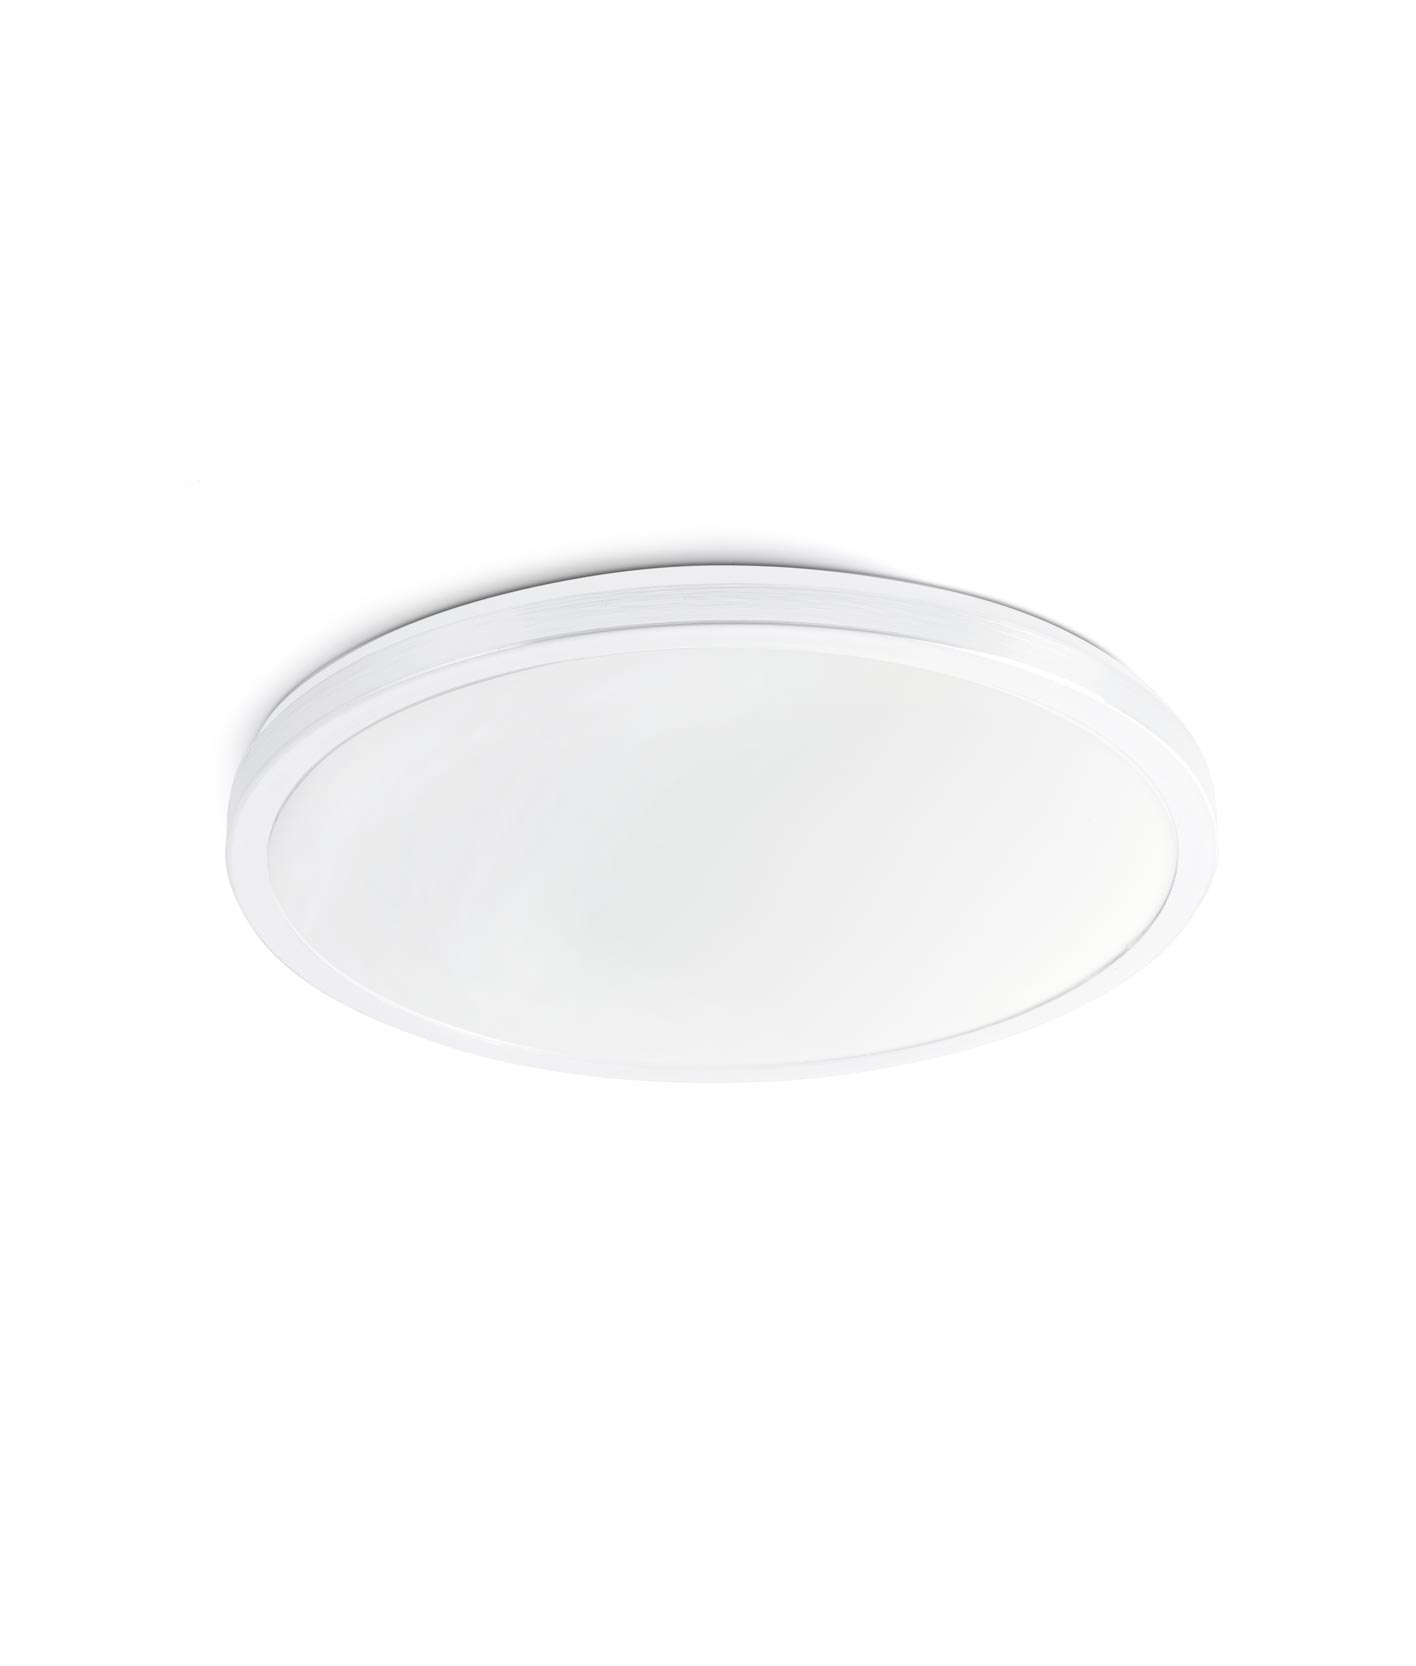 Plafón LED blanco FORO